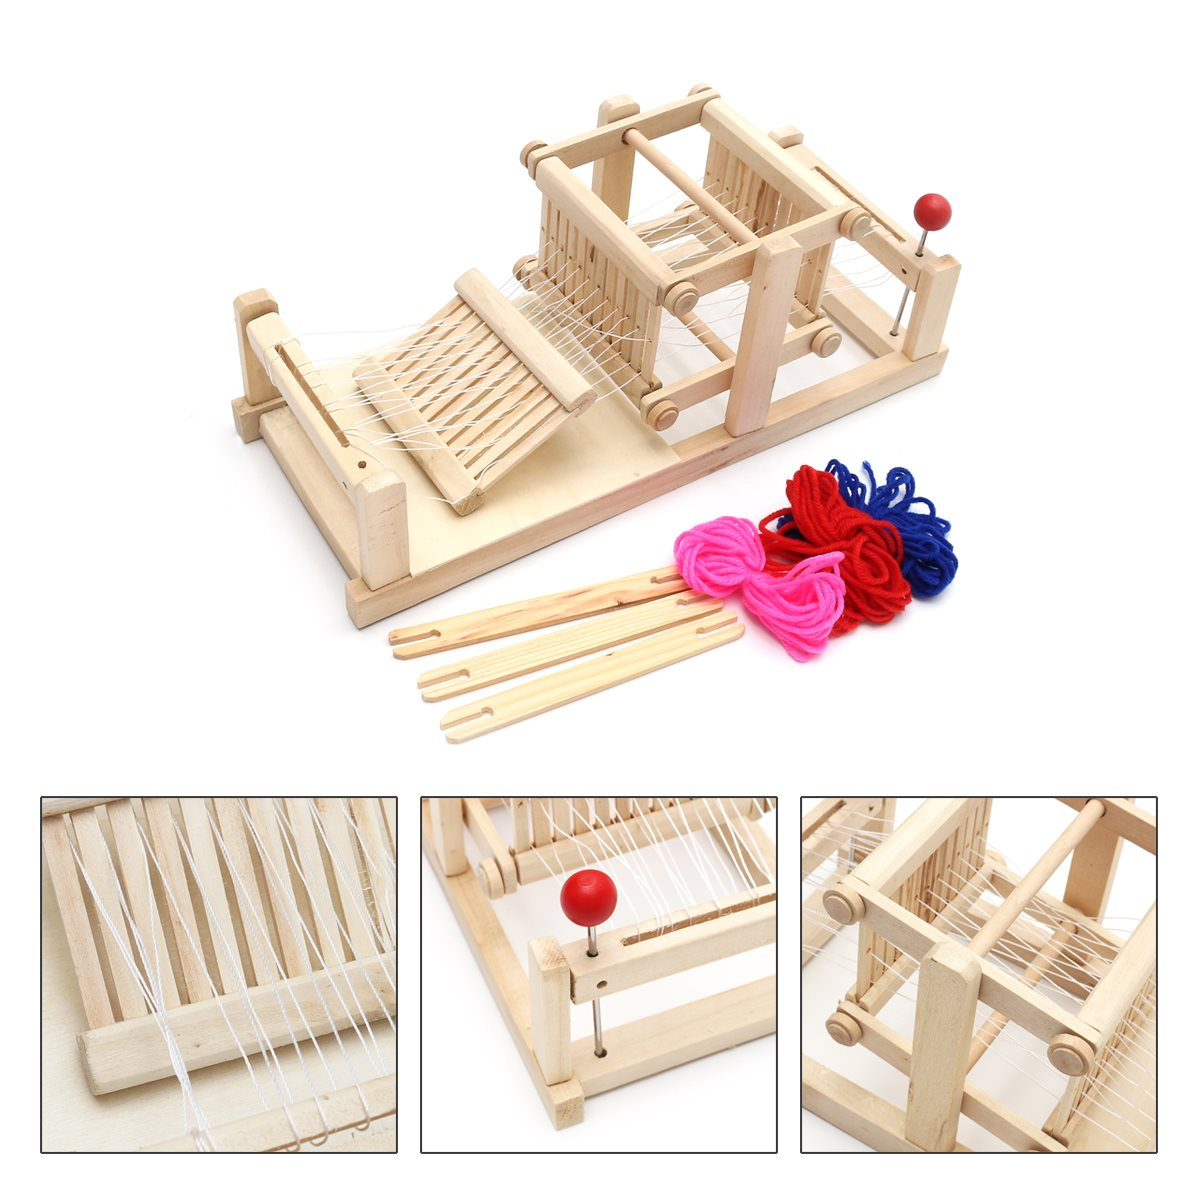 Chinese Traditional Wooden Table Weaving Loom Machine Model Hand Craft Toy Gift For Children Adult 5pcs lots 2017 film extraordinary corps mecha five beast hand collection model toy